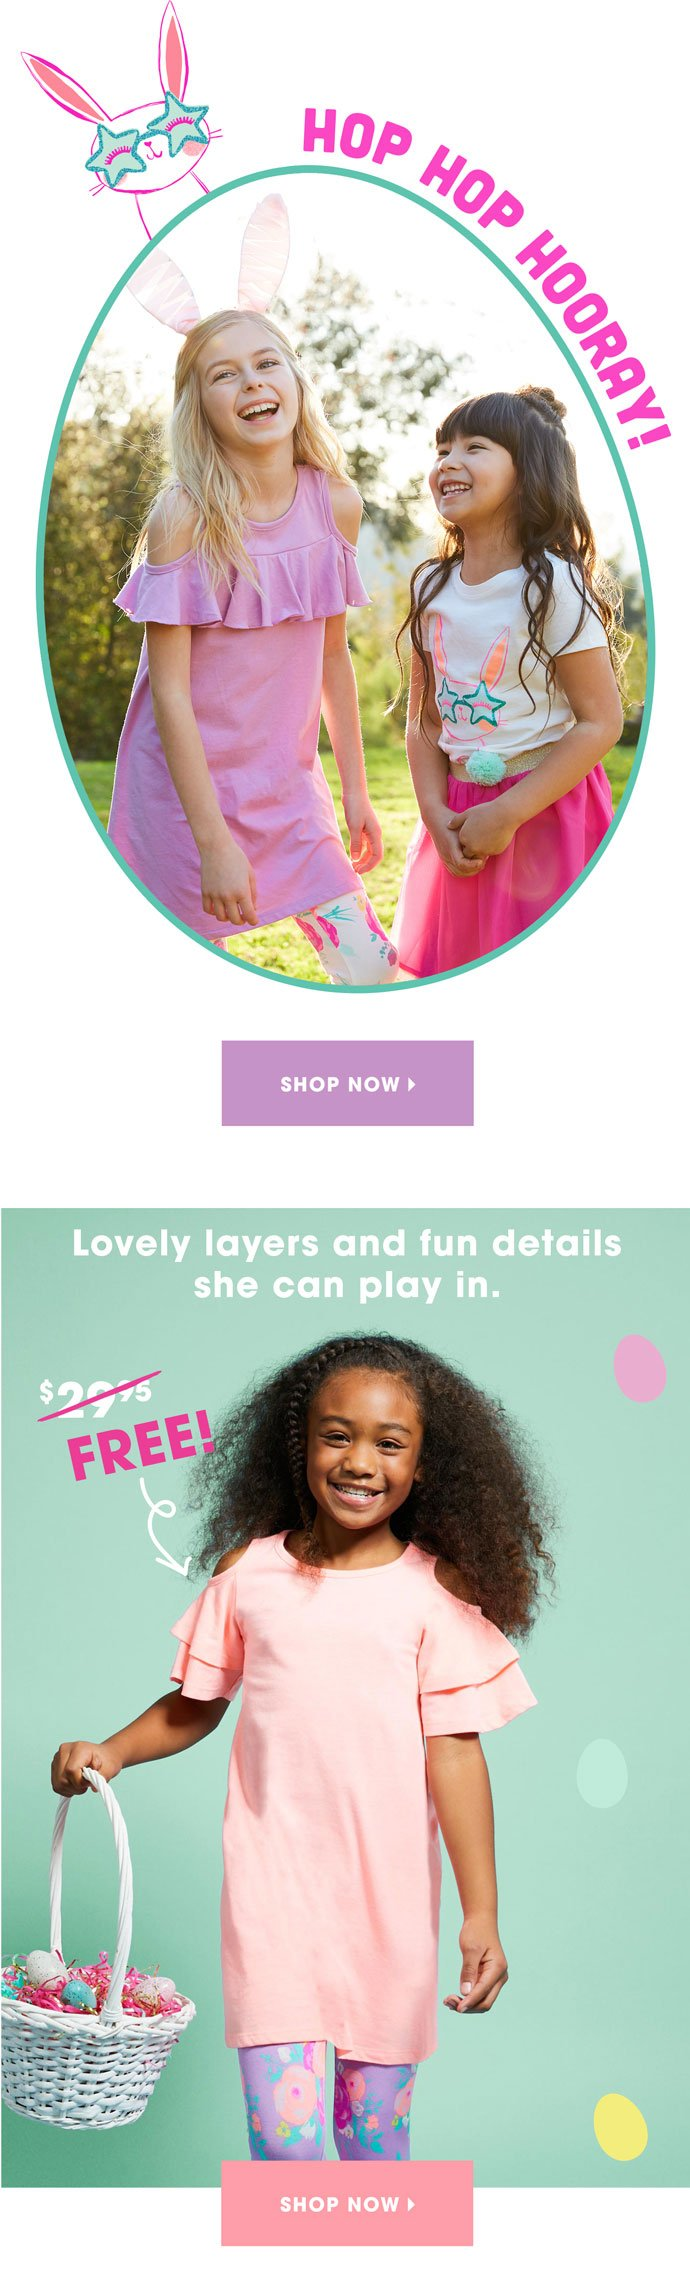 Shop All FREE Spring Outfits